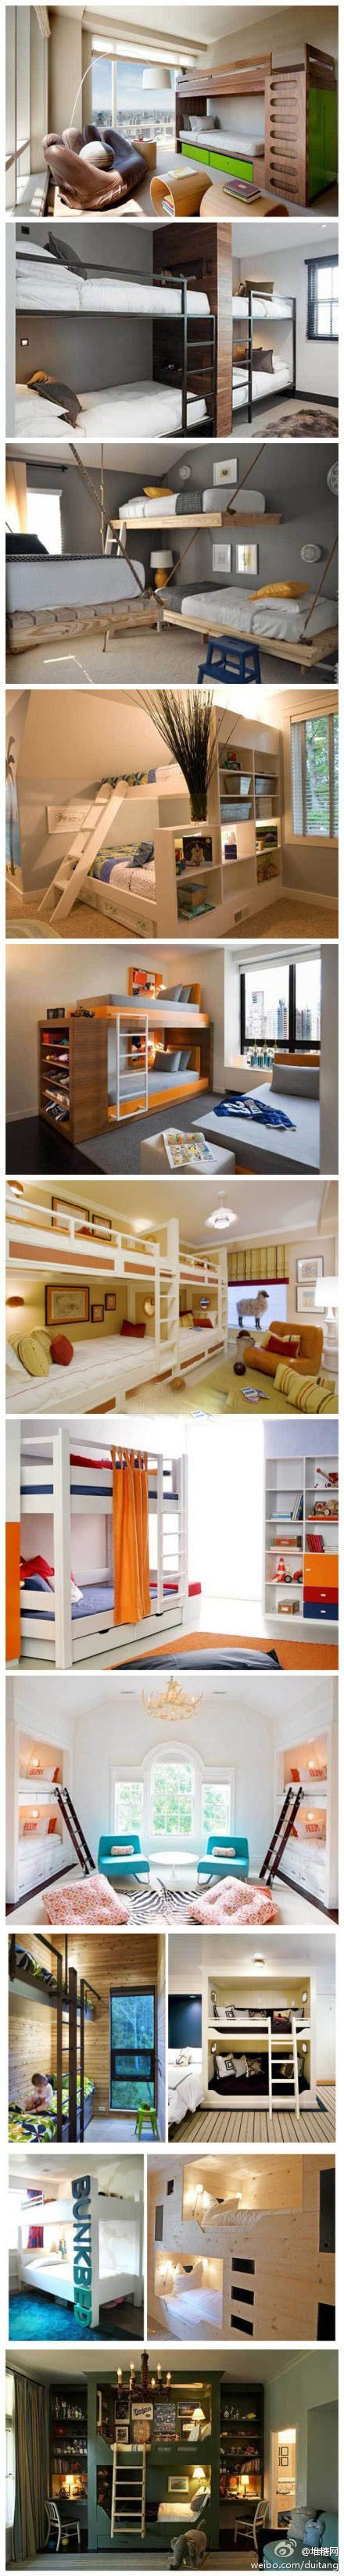 I so wanted a bunk bed as a kid! Maybe one day, when I own my own house, I'll make a reading nook... But it'll be a bunk bed nook. Genius.